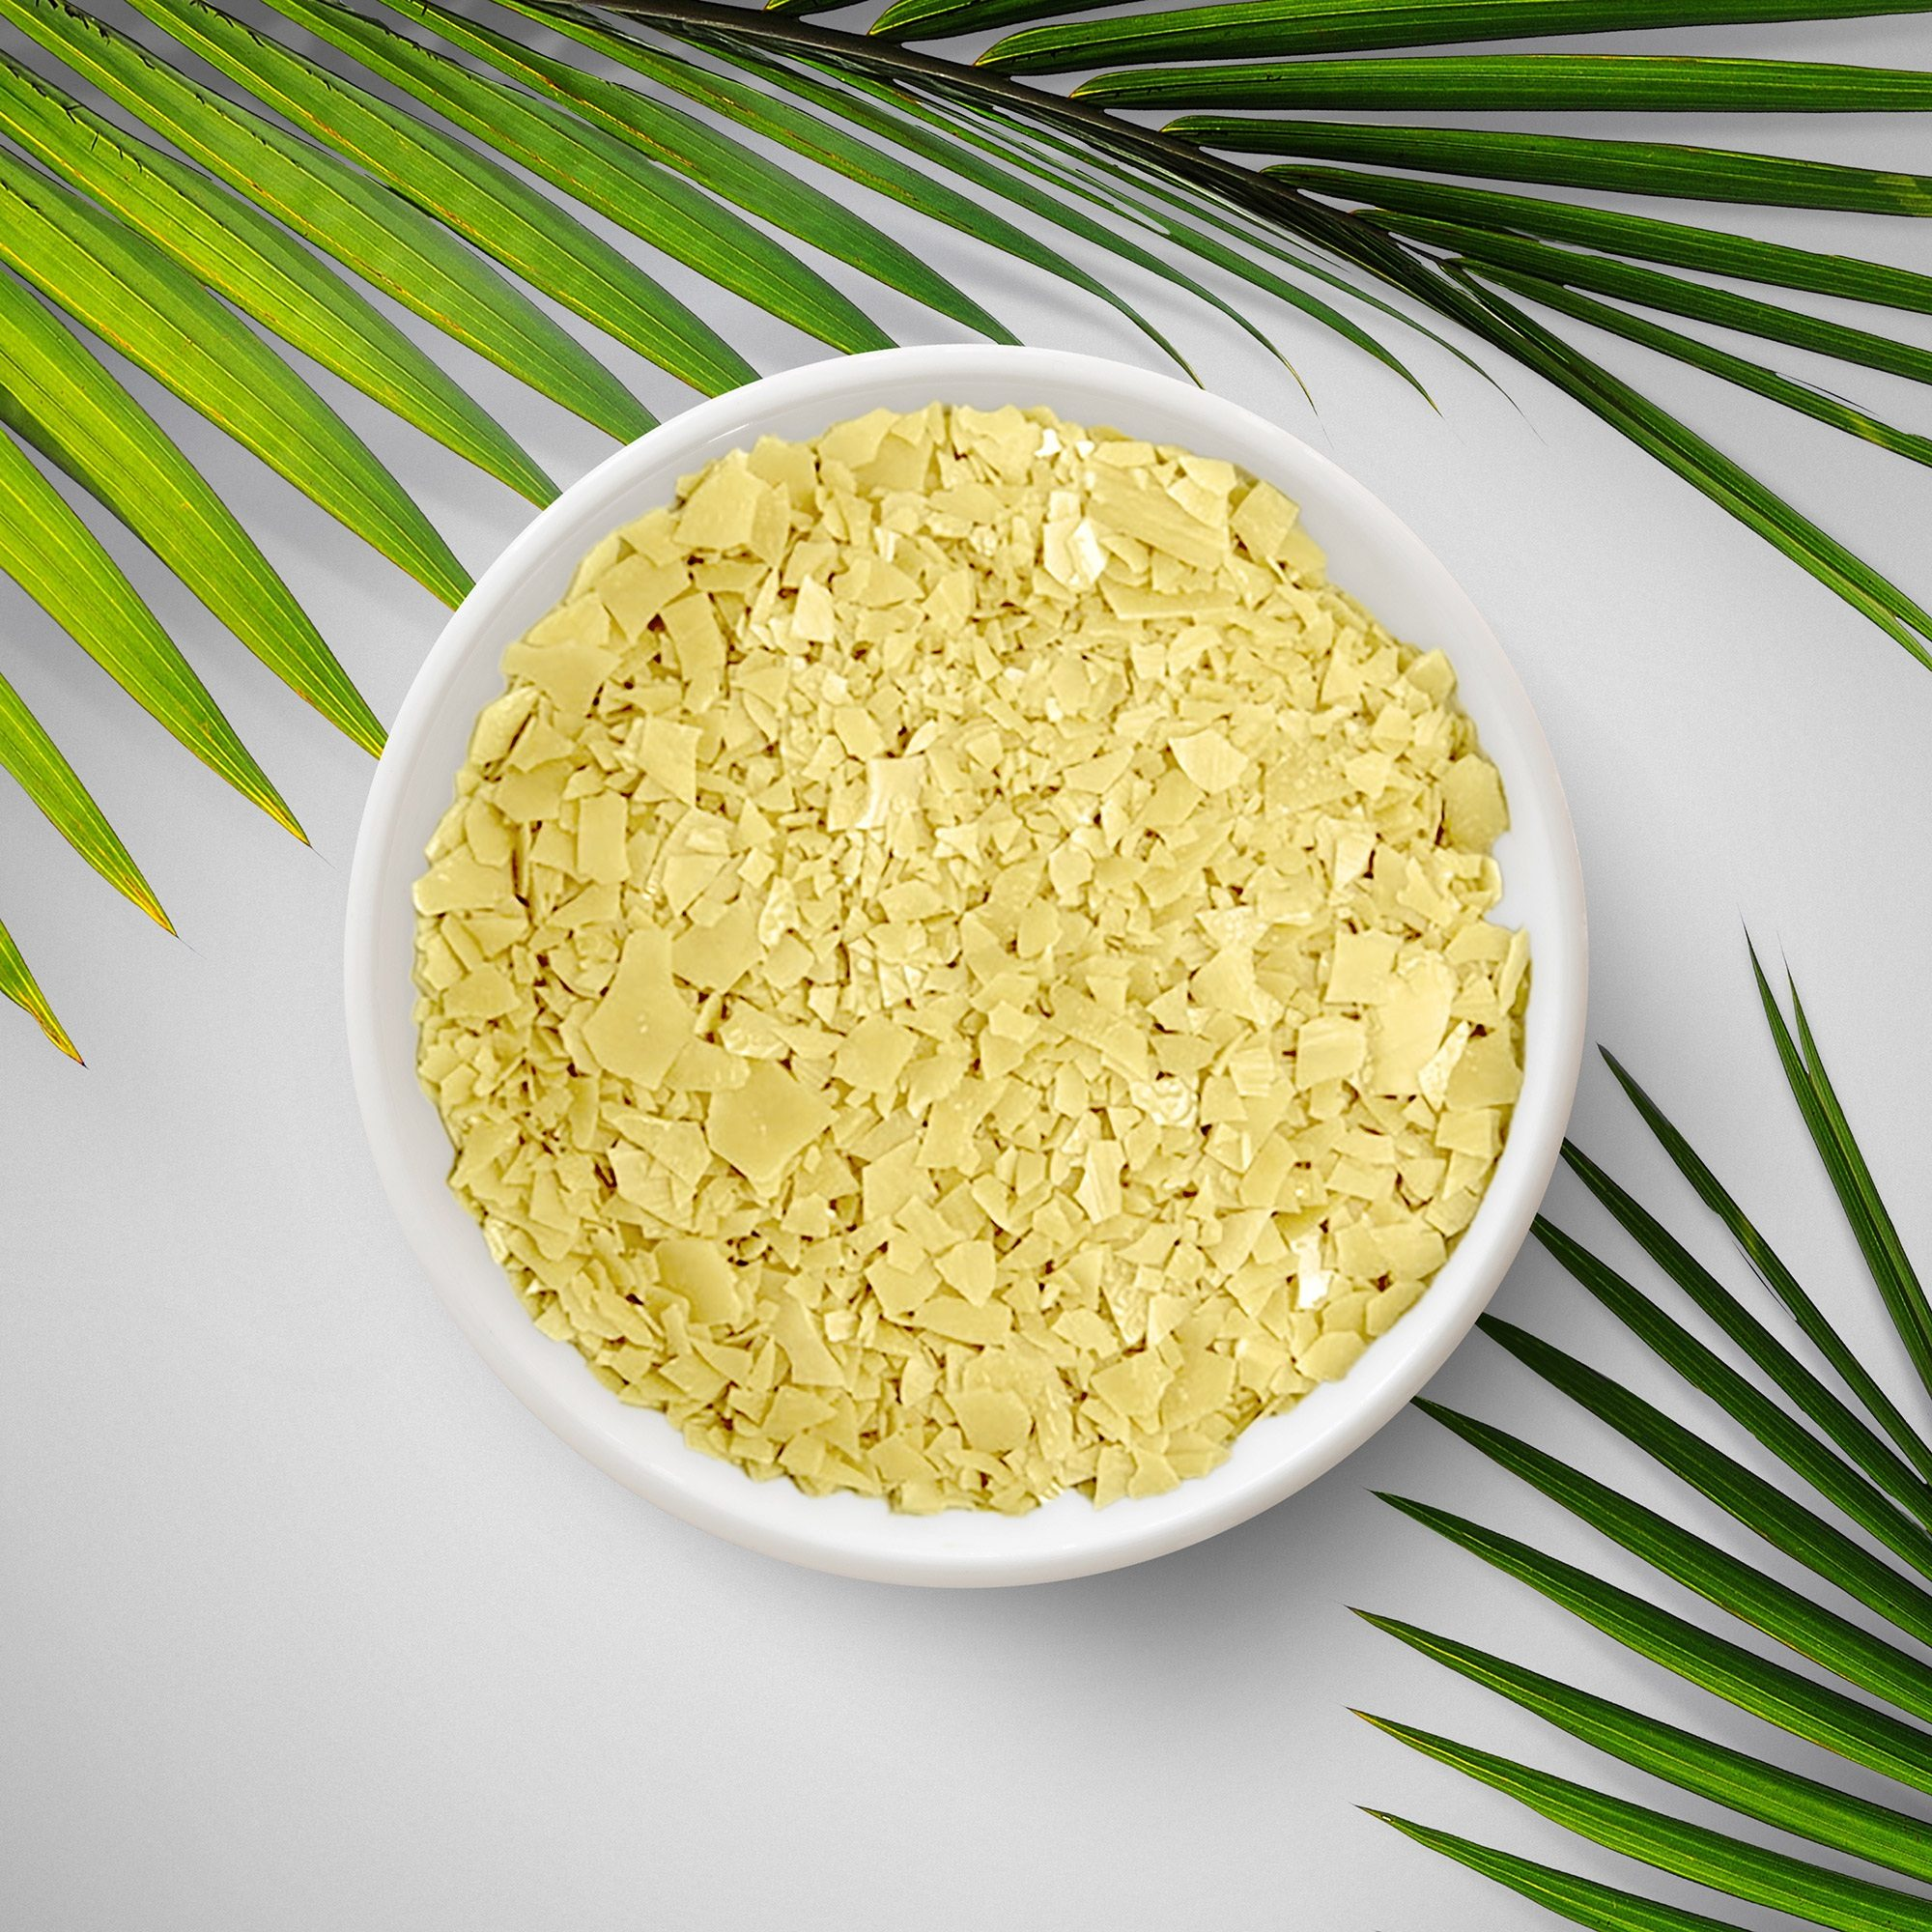 Yellow flakes of wax in a small bowl with palm leaves around the edge – supplied by H Foster.